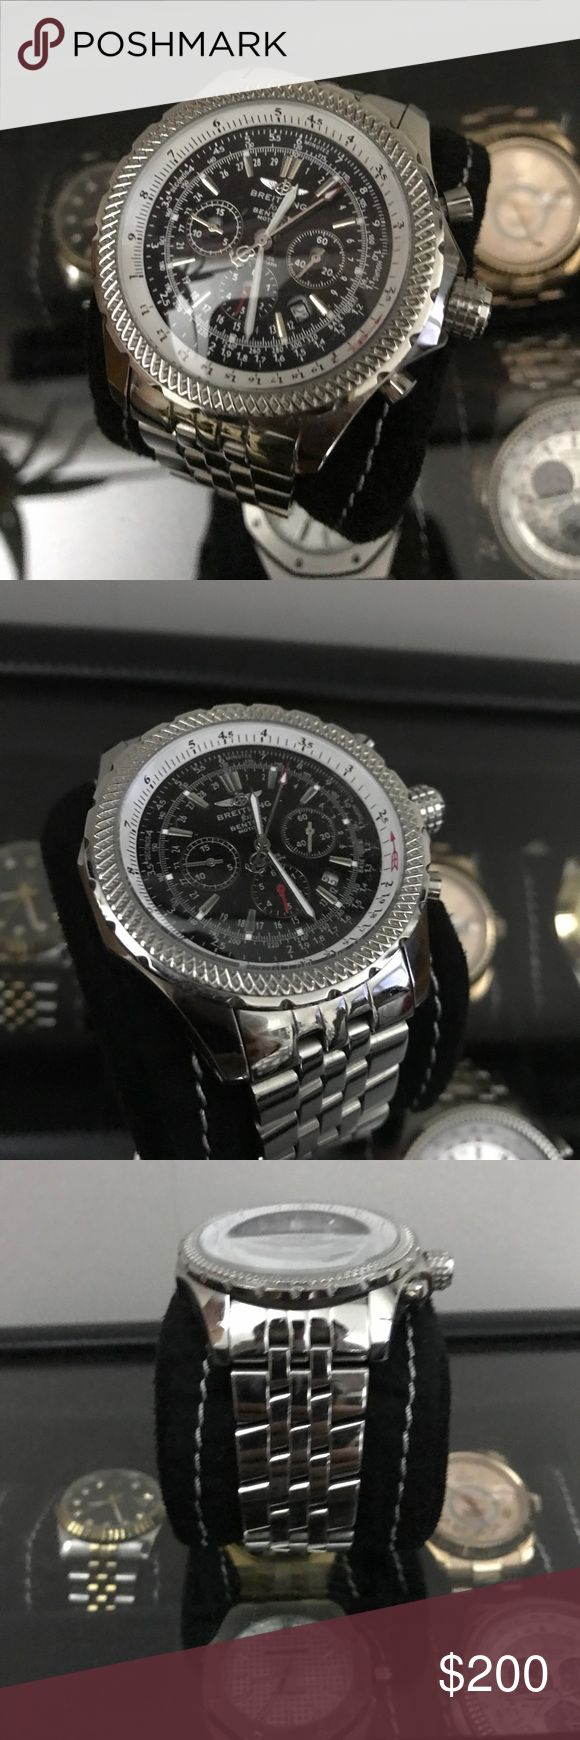 Breitling Bentley watch Breitling Bentley watch, AAA replica Breitling Accessories Watches